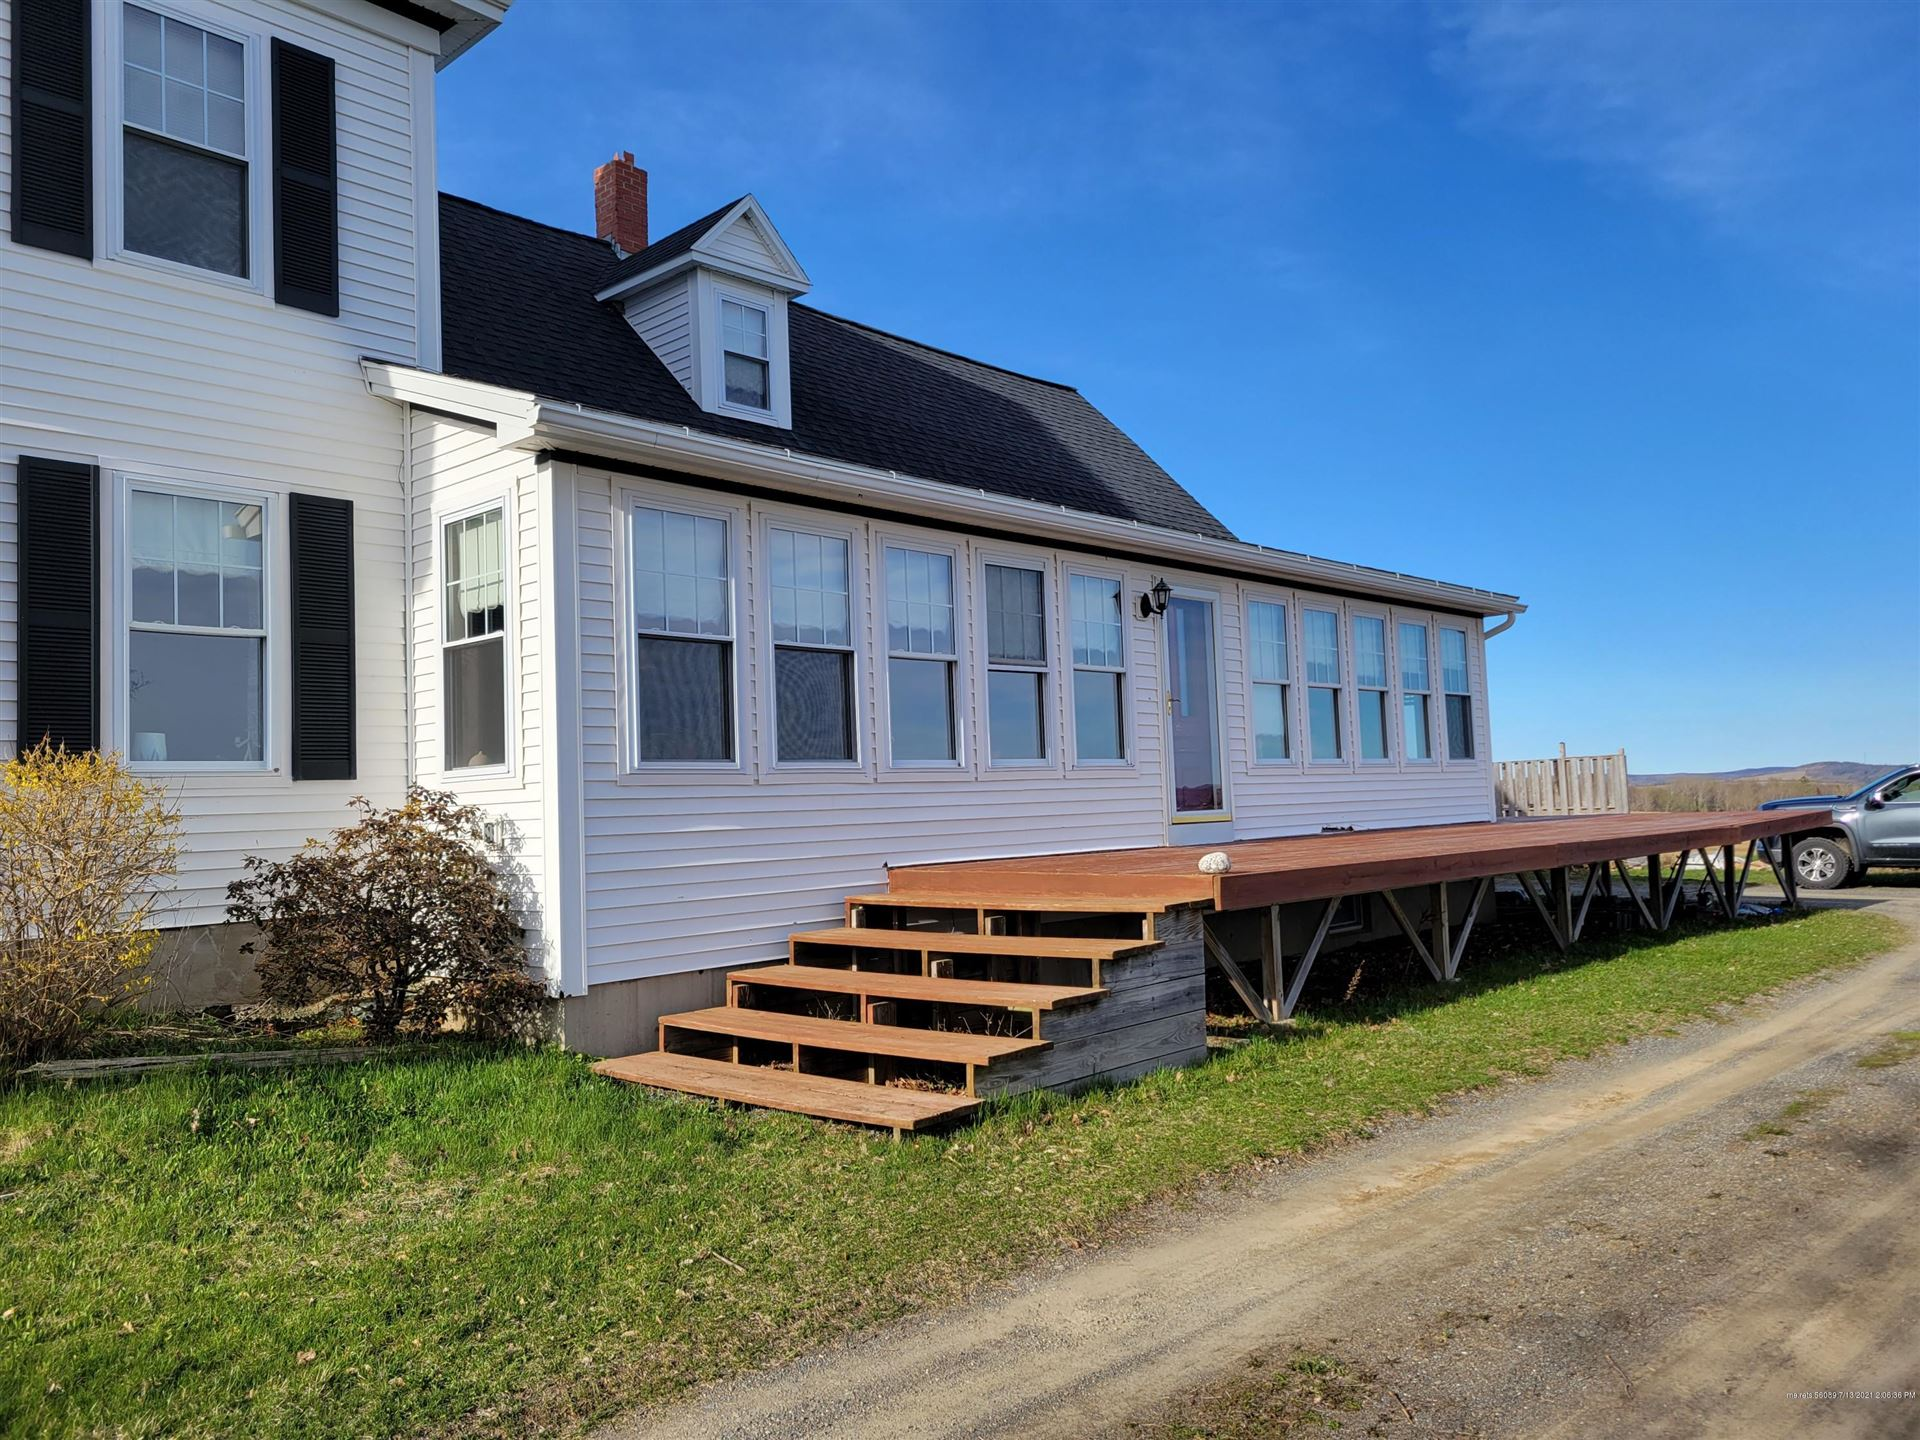 Photo of 334 Center Limestone Road, Fort Fairfield, ME 04742 (MLS # 1492453)